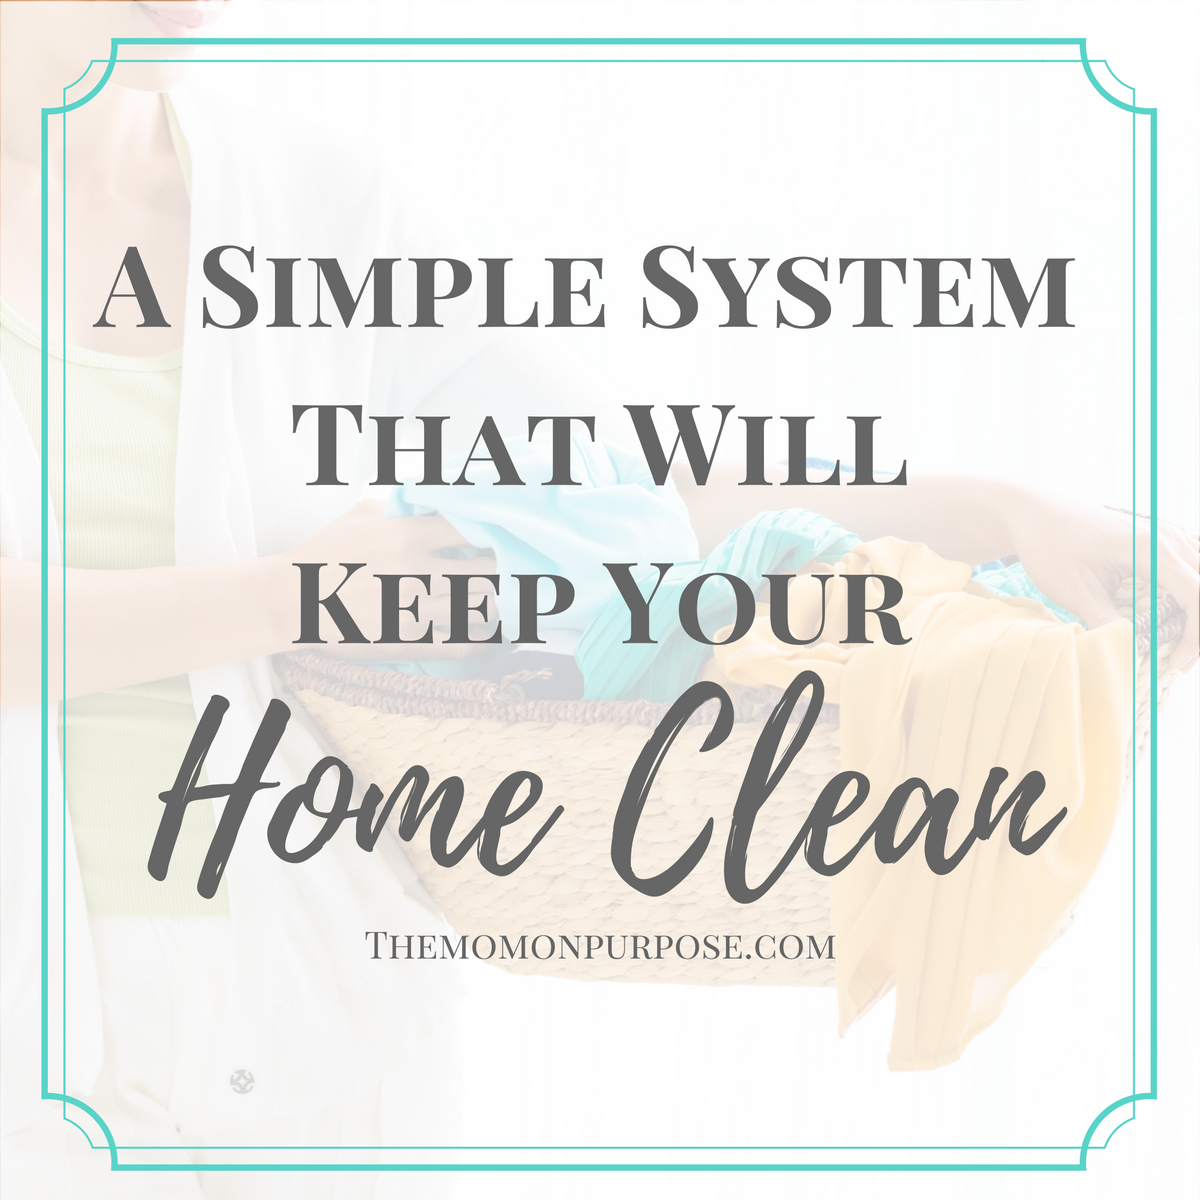 A Simple System That Will Keep Your Home Clean